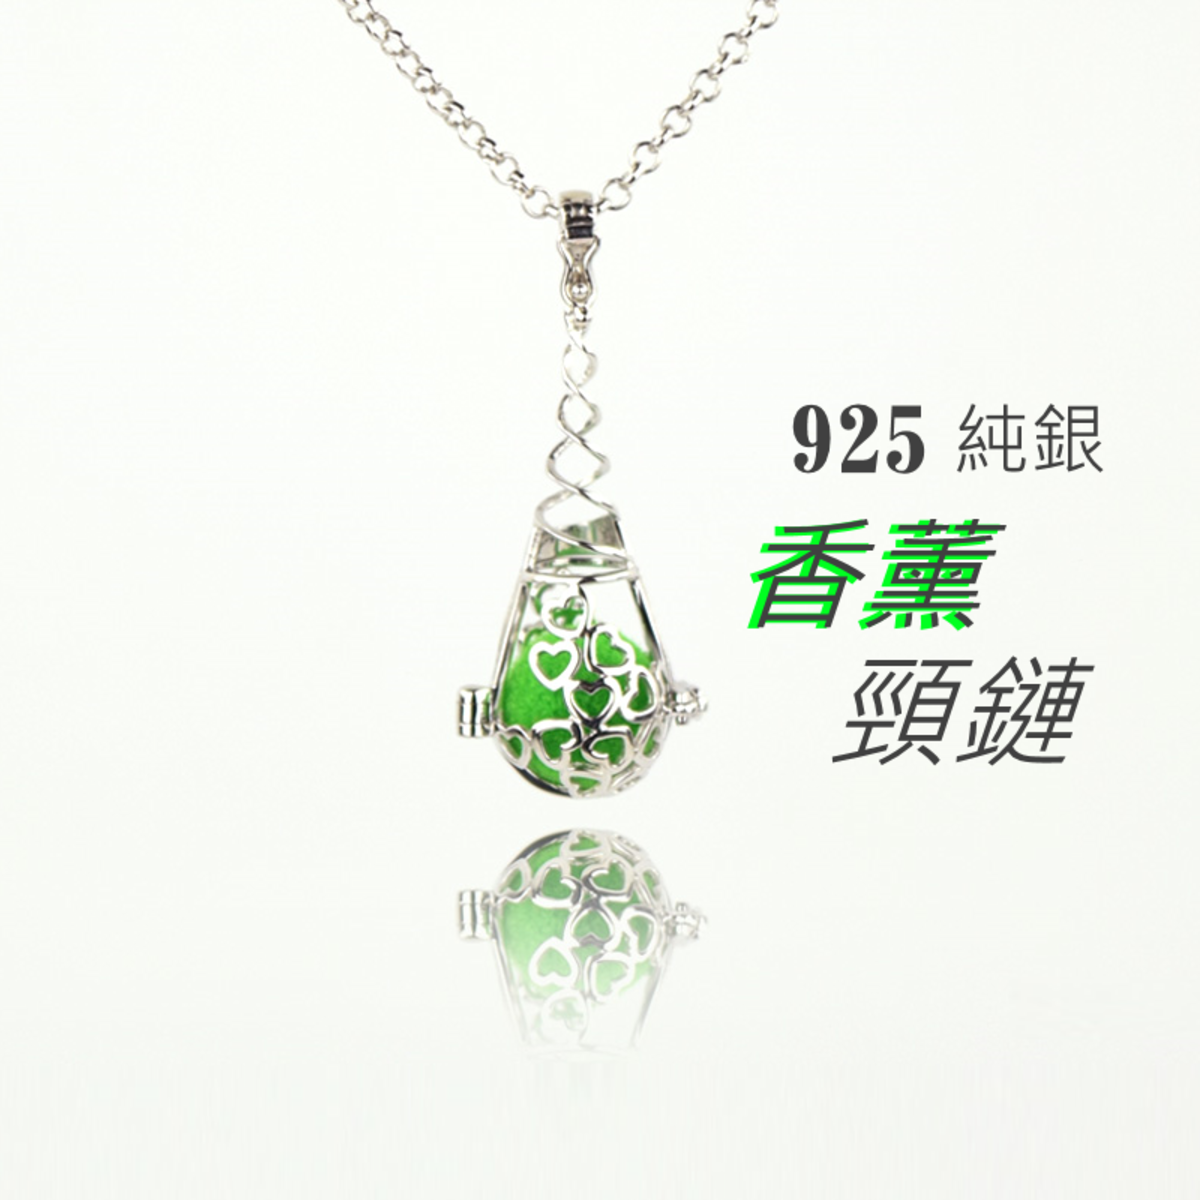 925 Silver Charming Spiral Heart Water Drop Pendant Diffuser Aroma Aromatherapy Necklace